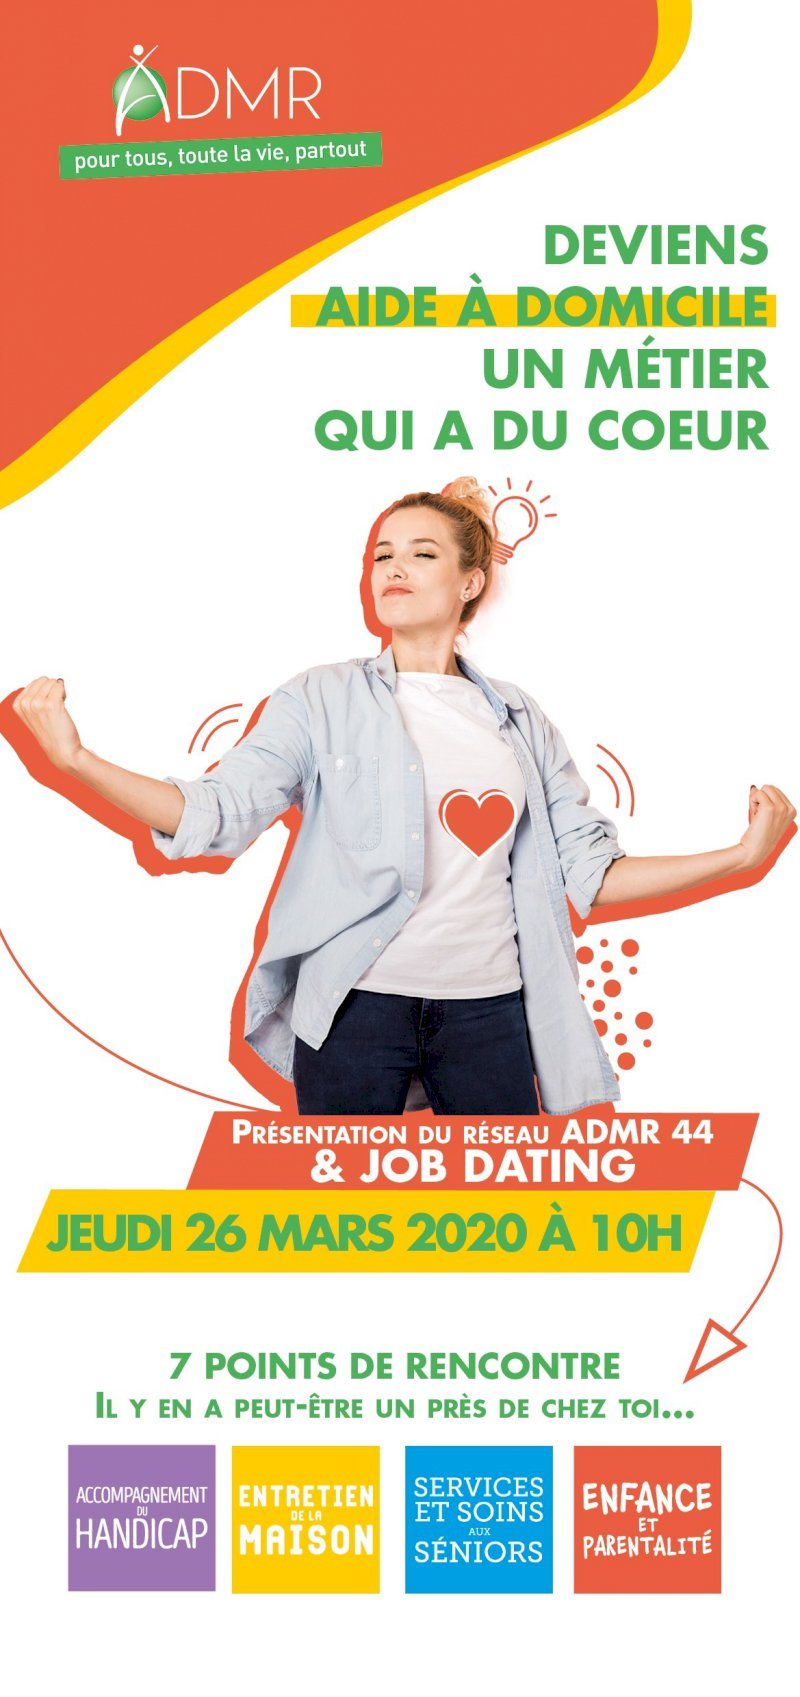 Matinée job-dating à l'ADMR